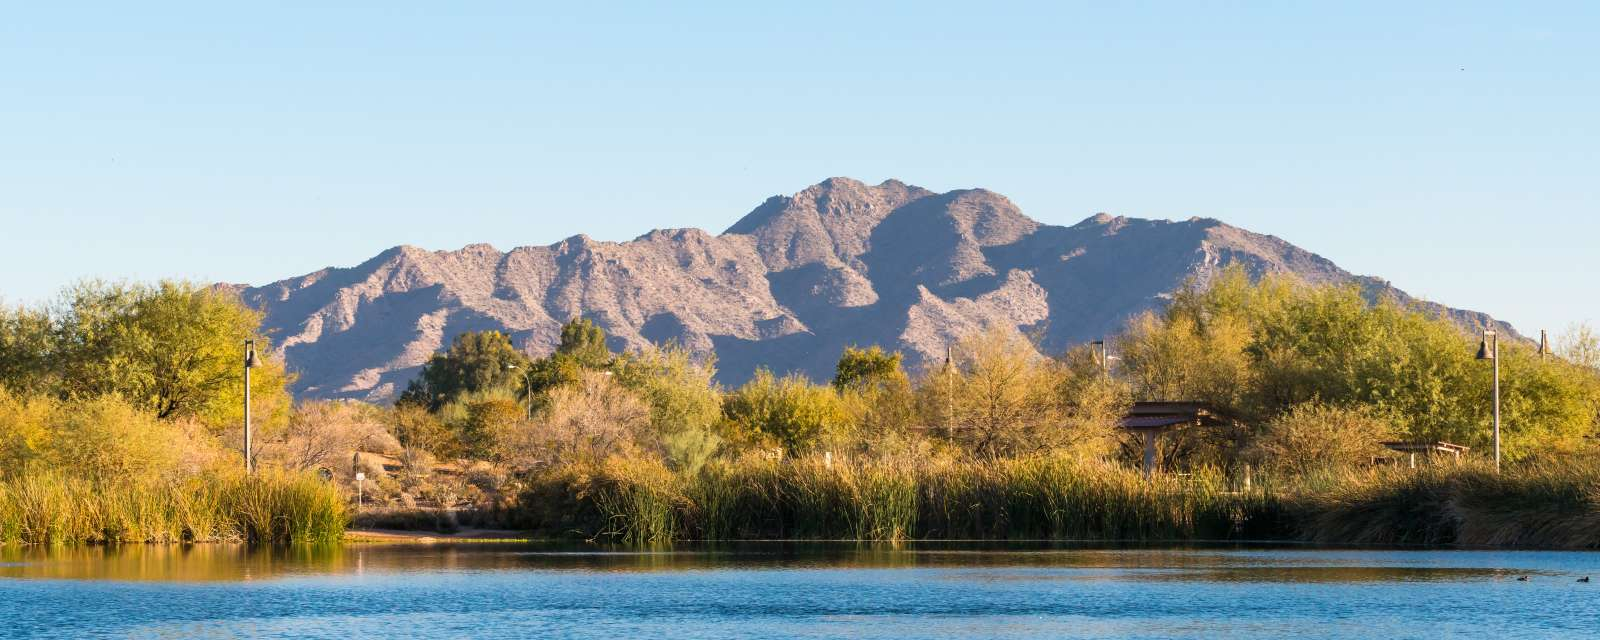 Things To Do In Chandler Az Attractions Museums Golf